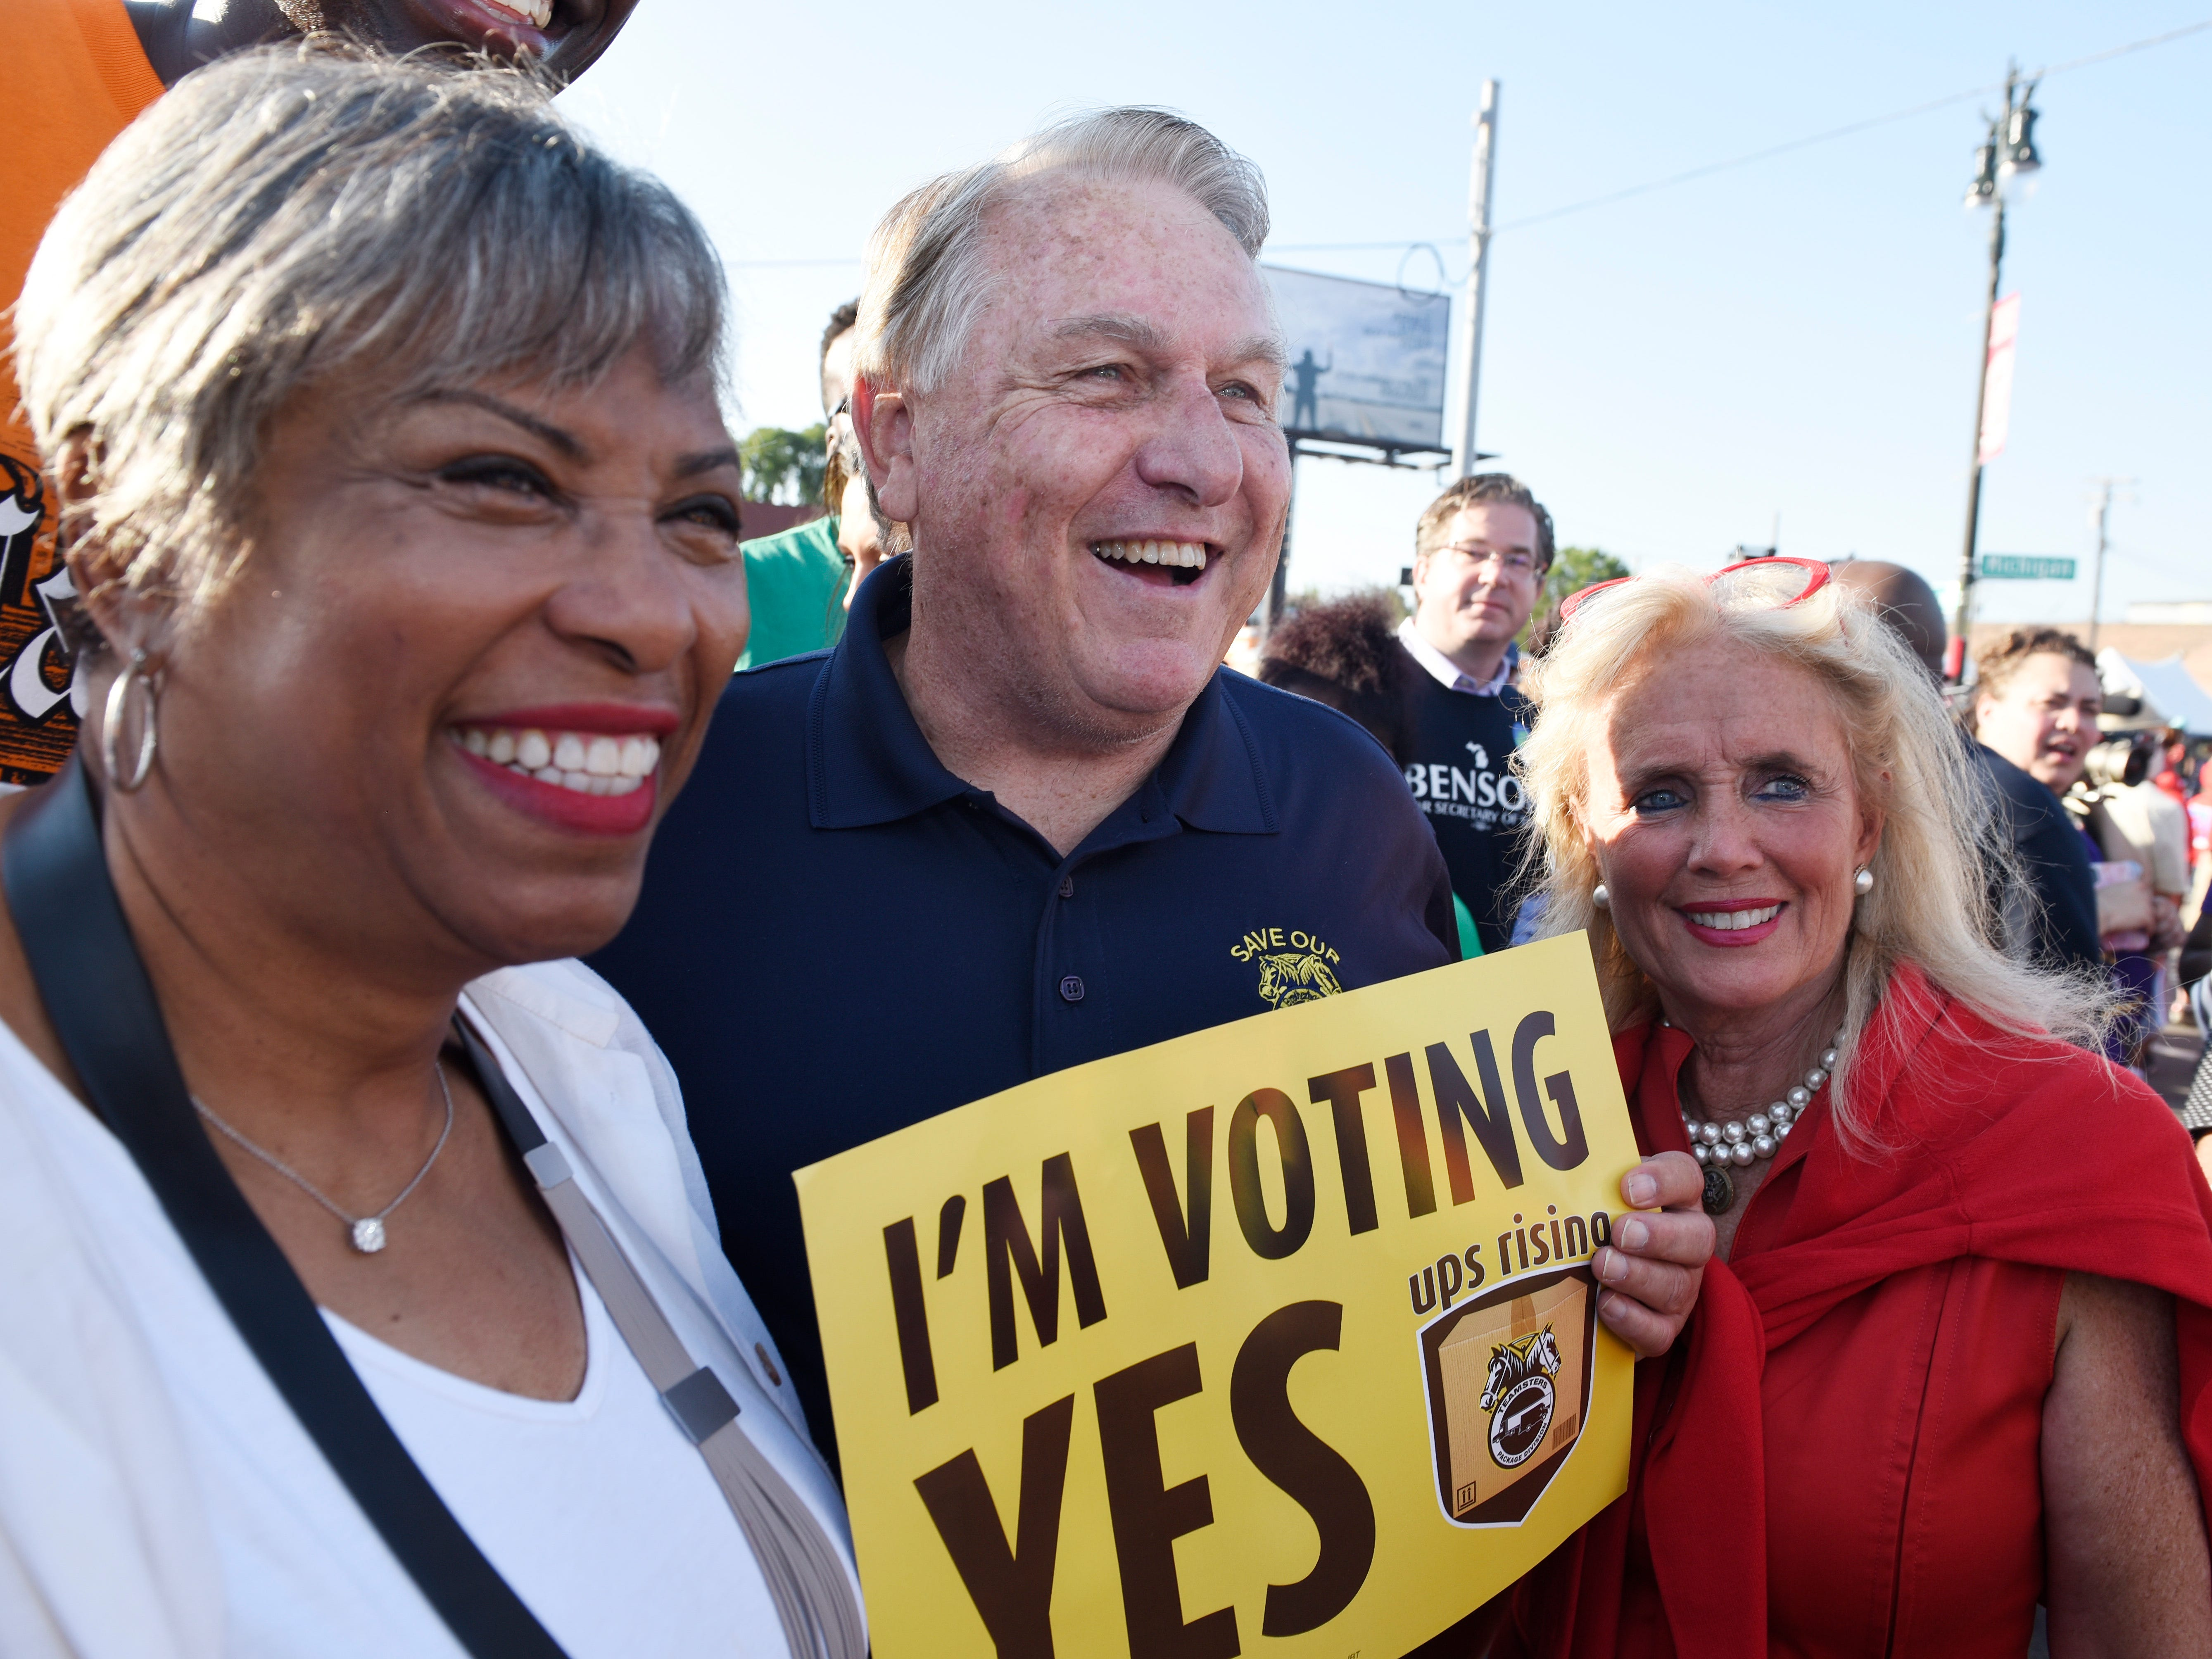 Congresswomen Brenda Lawrence, James P. Hoffa, General President of the International Brotherhood of Teamsters and Congresswoman Debbie Dingell pose for a photo.